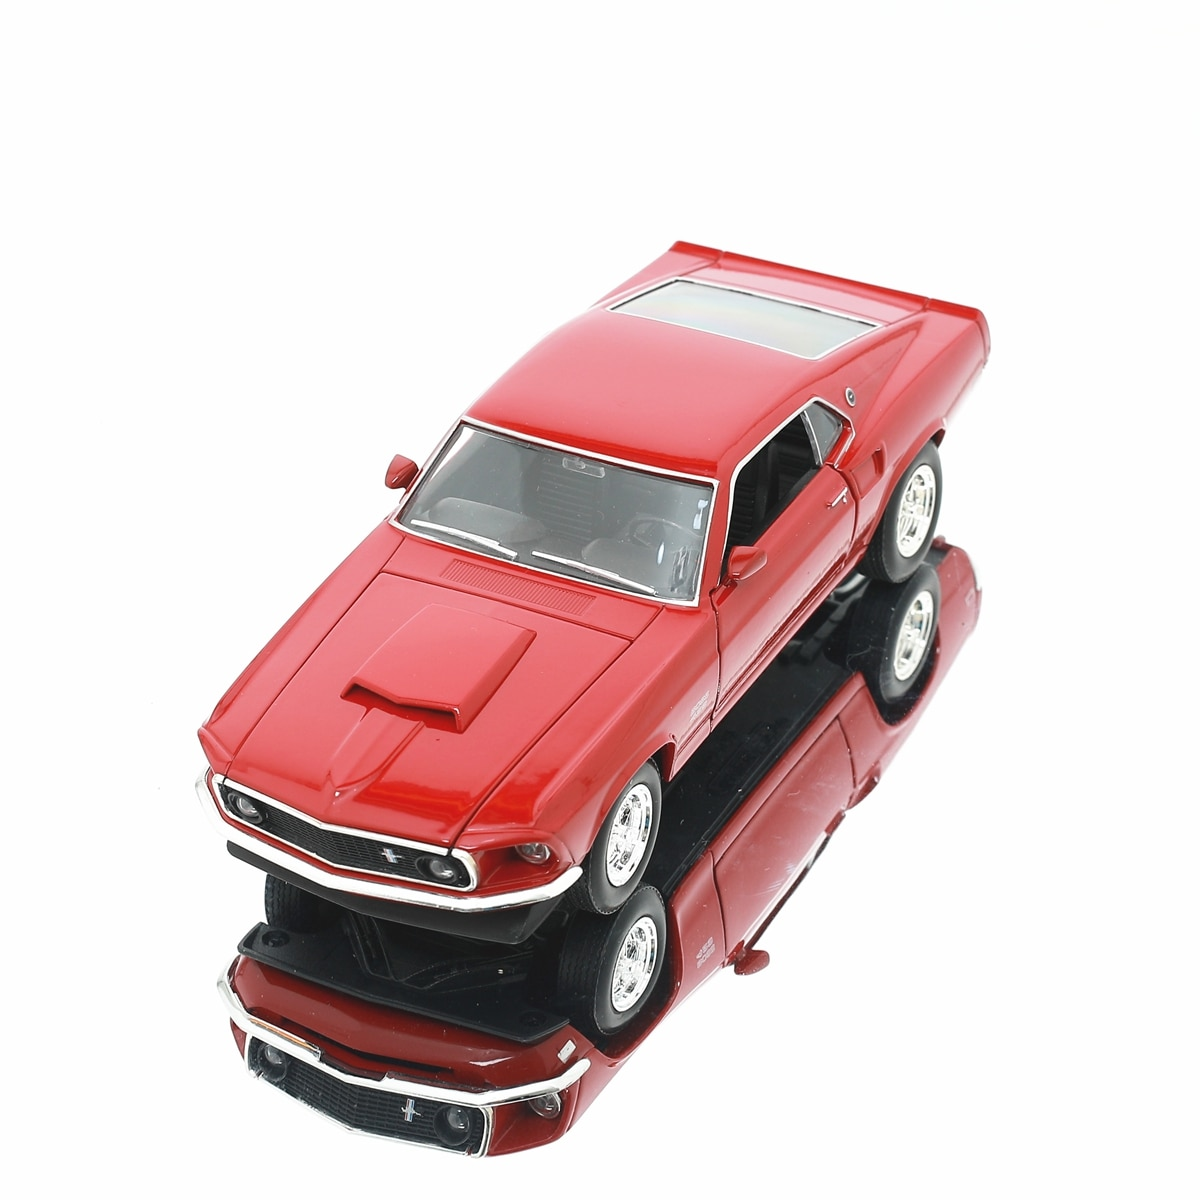 road signature vintage 1968 ford shelby mustang gt 500kr muscle race diecast 1 18 scale metal model cars WELLY 1:24 1969 Ford Mustang Boss 429 Metal Luxury Vehicle Diecast Pull Back Cars Model Toy Collection Xmas Gift